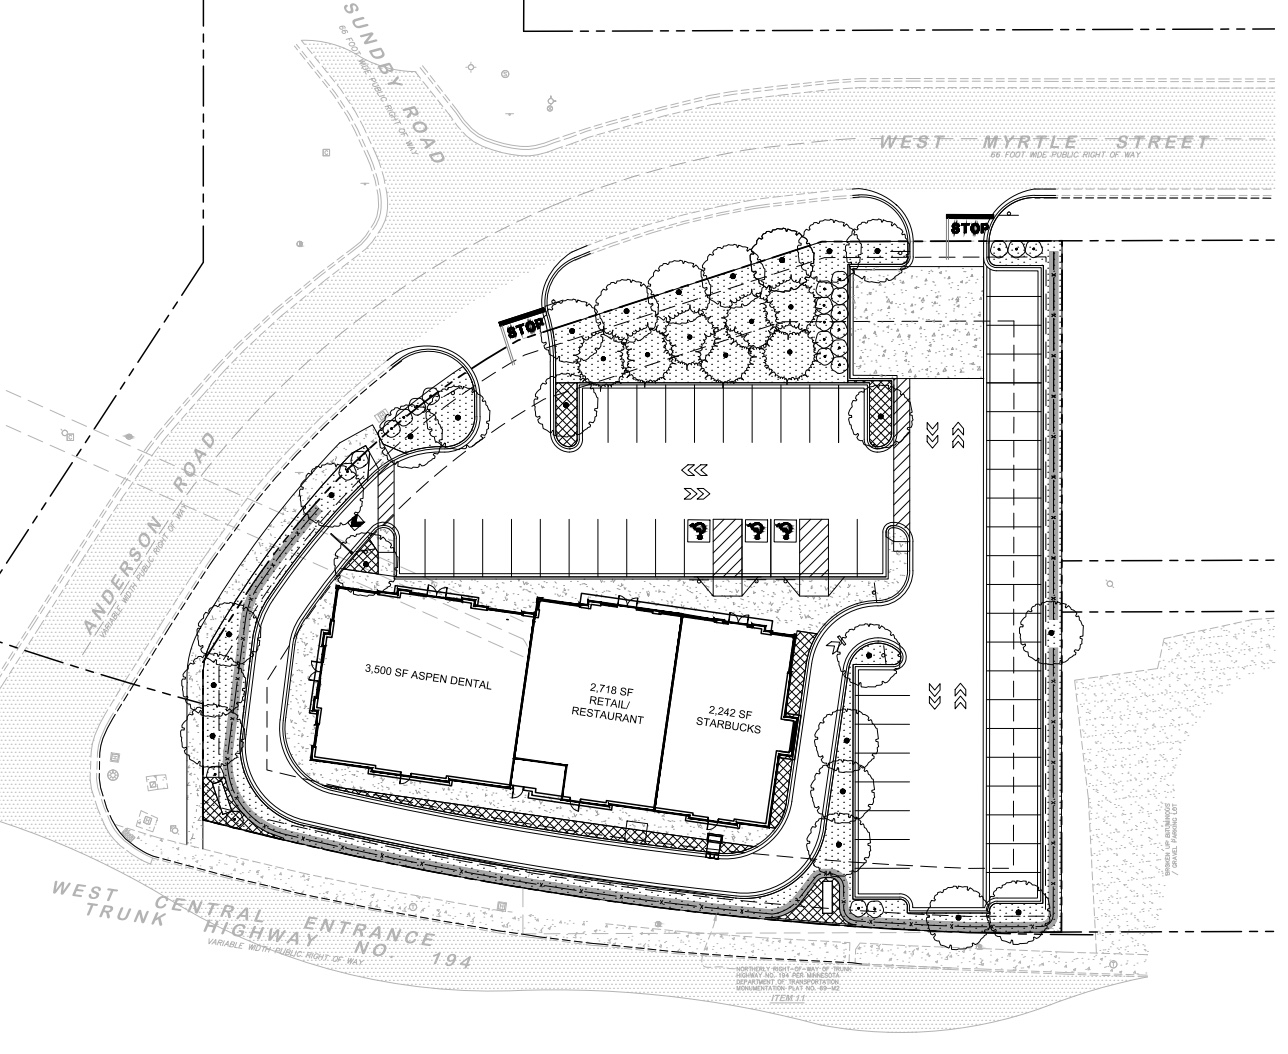 Site Plan for planned commercial development  |  City of Duluth Planning Commission